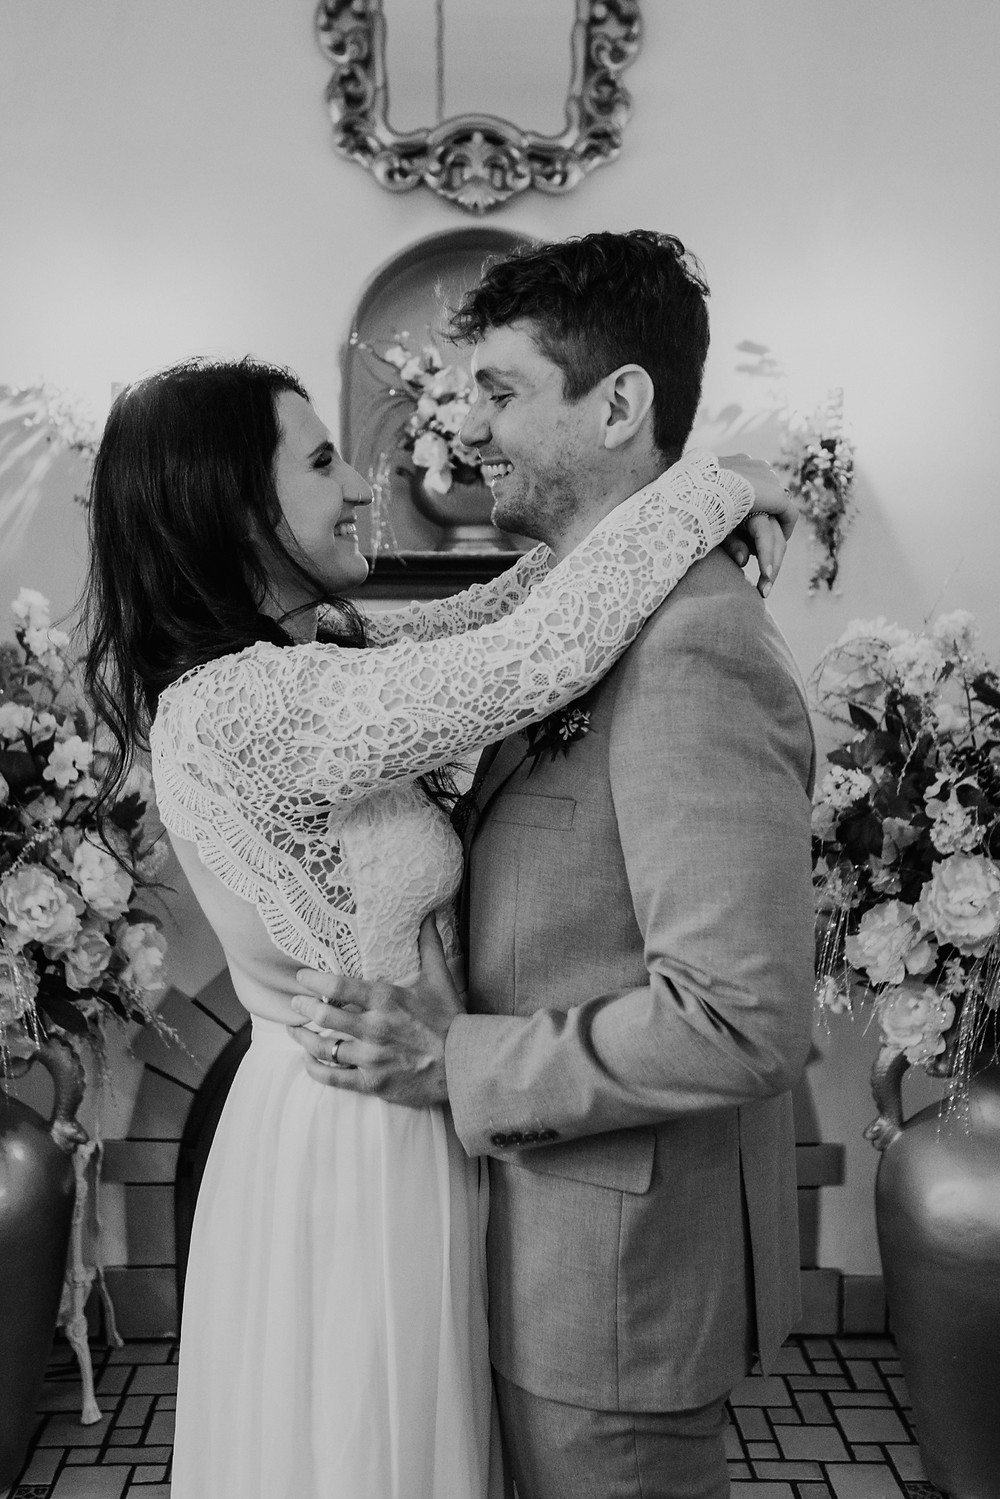 Metro Detroit couple getting married at Victoria Wedding Chapel. Photographed by Metro Detroit Wedding Photographer Nicole Leanne Photography